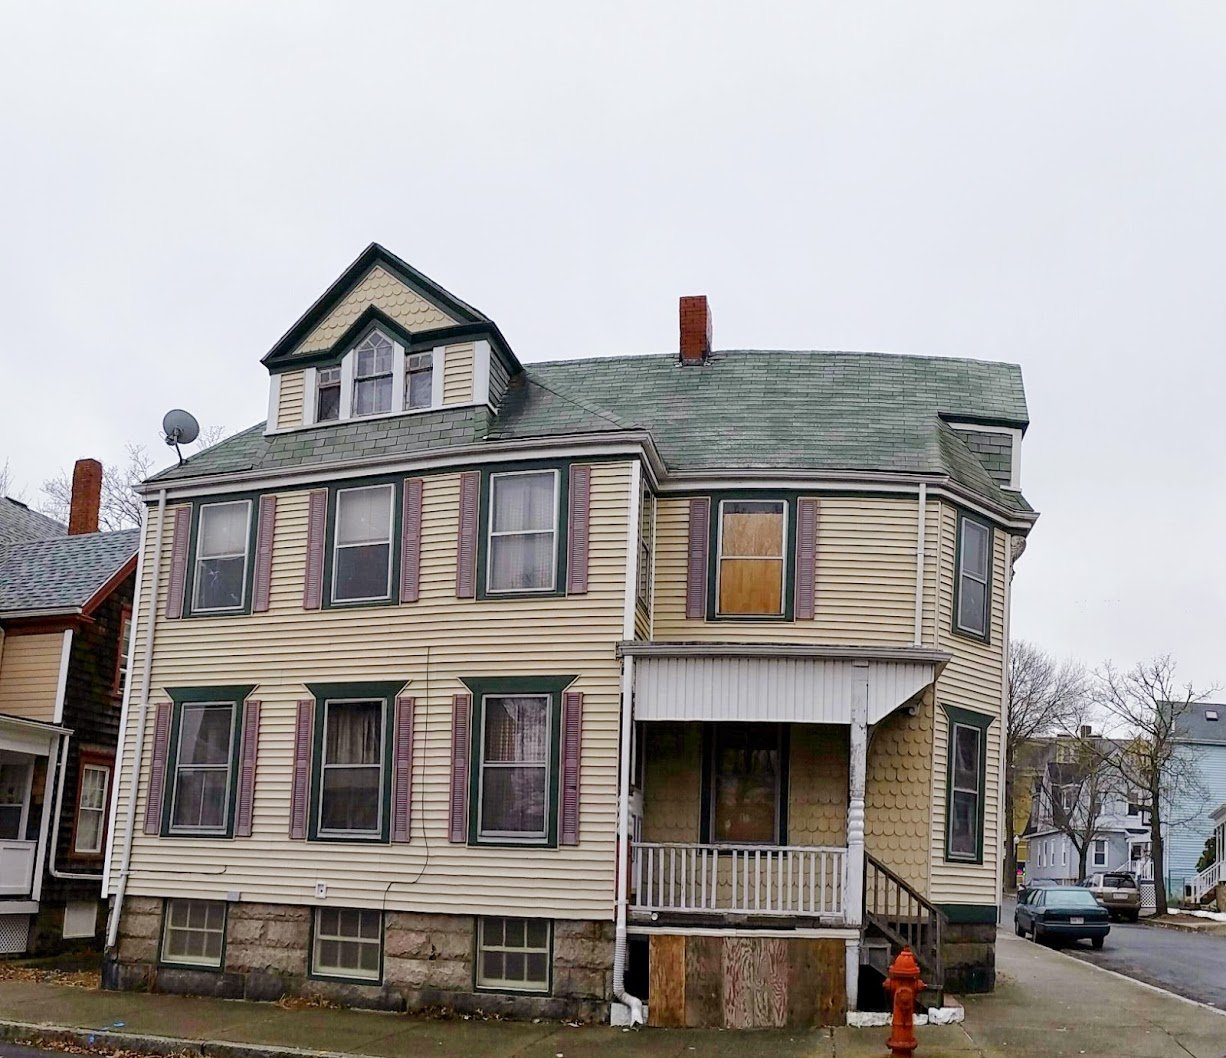 Built in 1891 in <a href='http://susanwhitehead.masspropertyvalues.com/index.php?types[]=1&types[]=2&areas[]=city:New Bedford&beds=0&baths=0&min=0&max=100000000&map=0&sortby=listings.listingdate DESC&quick=1&submit=Search' title='Search Properties in New Bedford'>New Bedford</a>